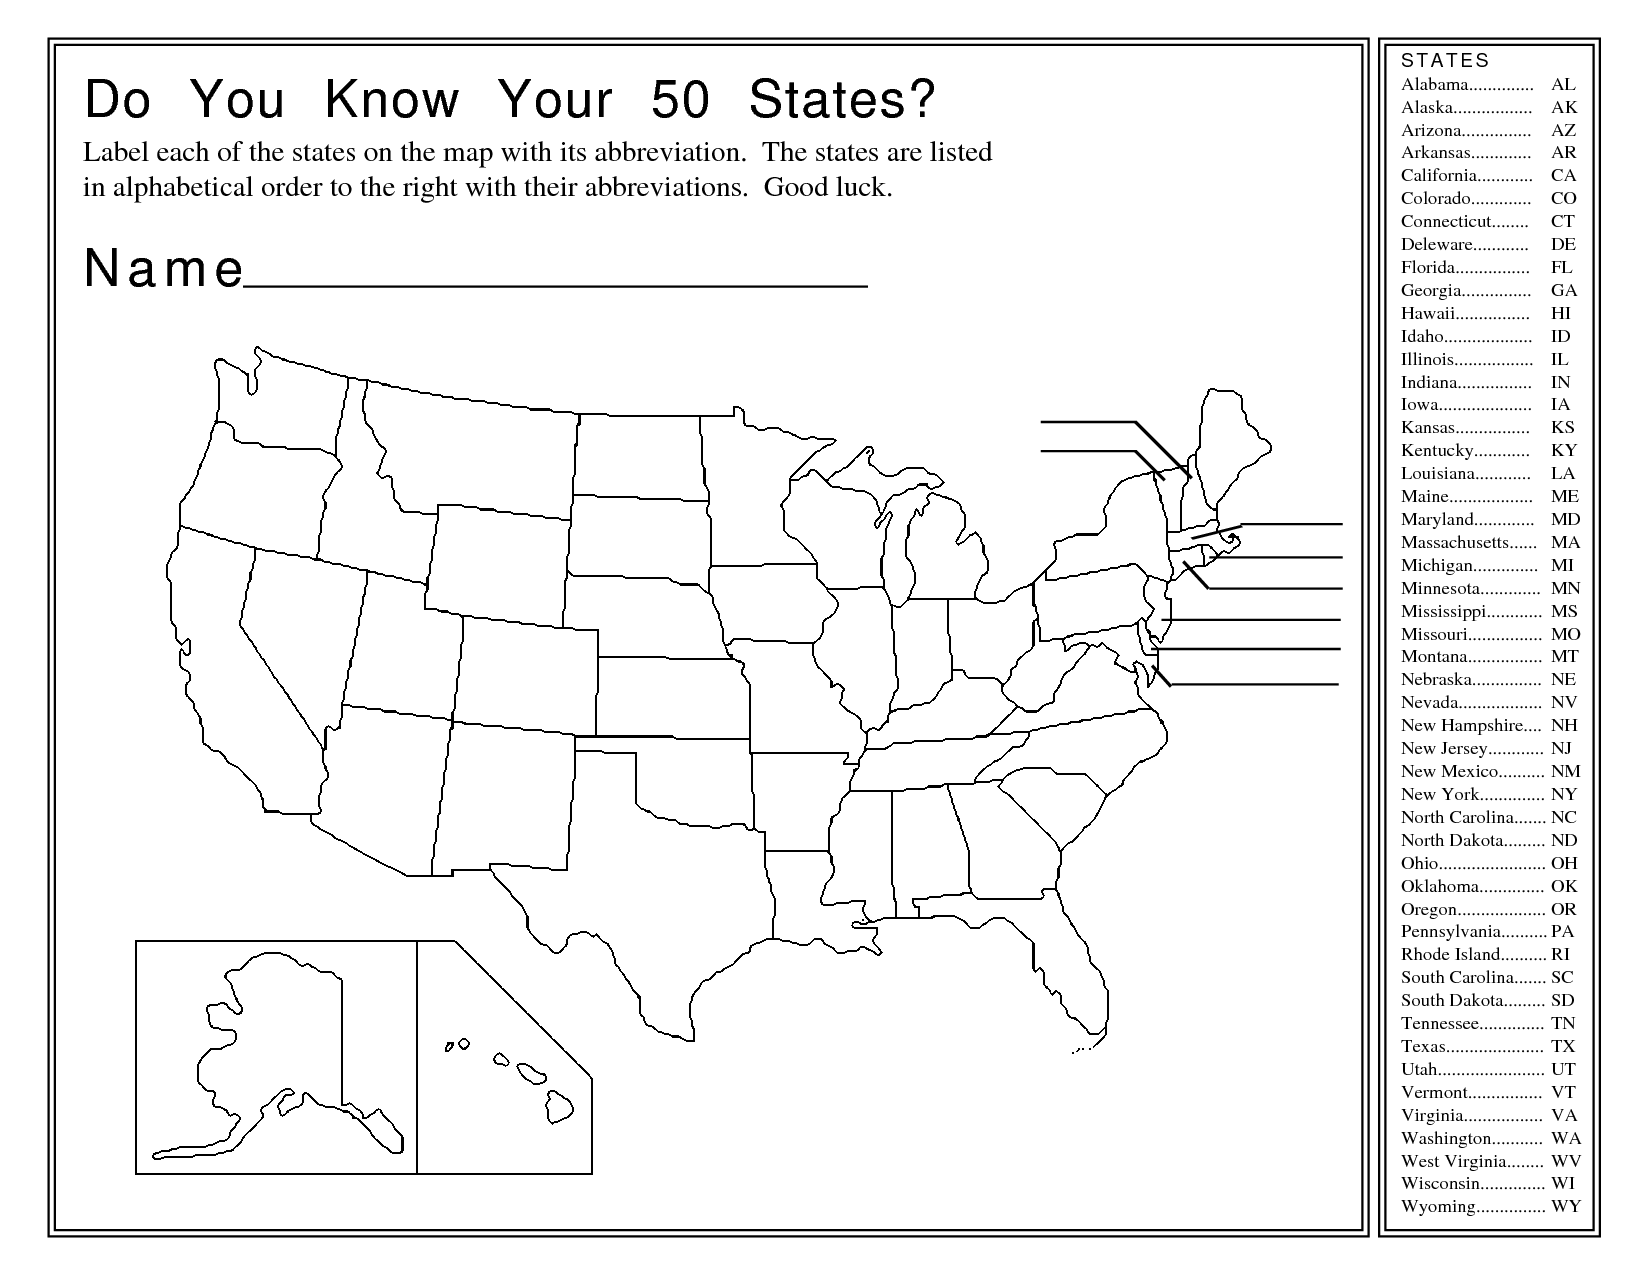 5 Best Images of Printable 50 States Worksheets - 50 States ...